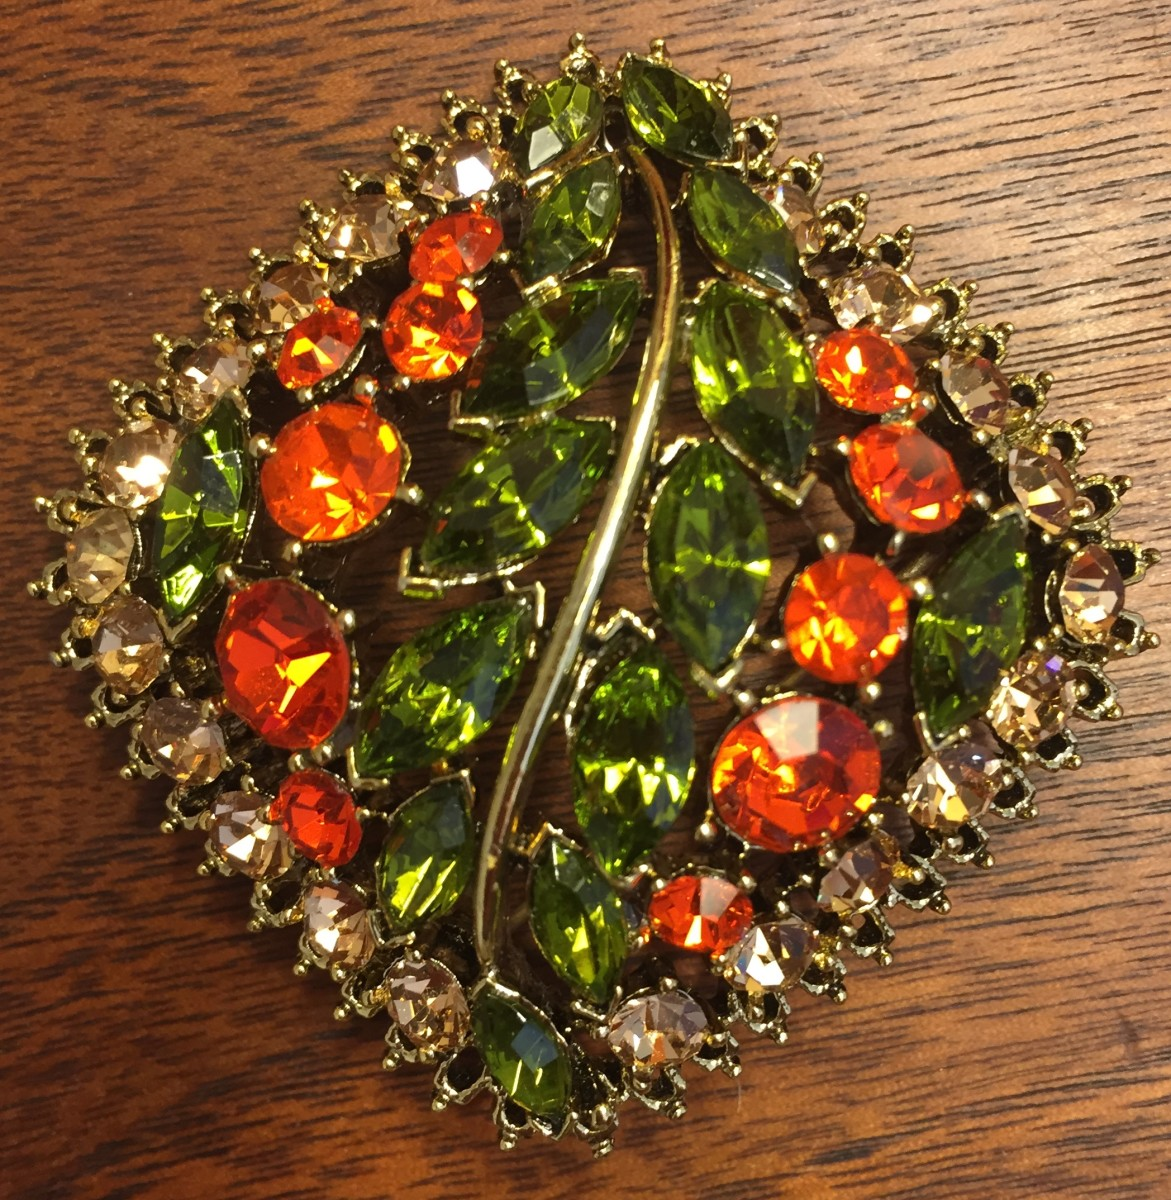 Treasure Hunt: Finding and Identifying Midcentury Costume Jewelry